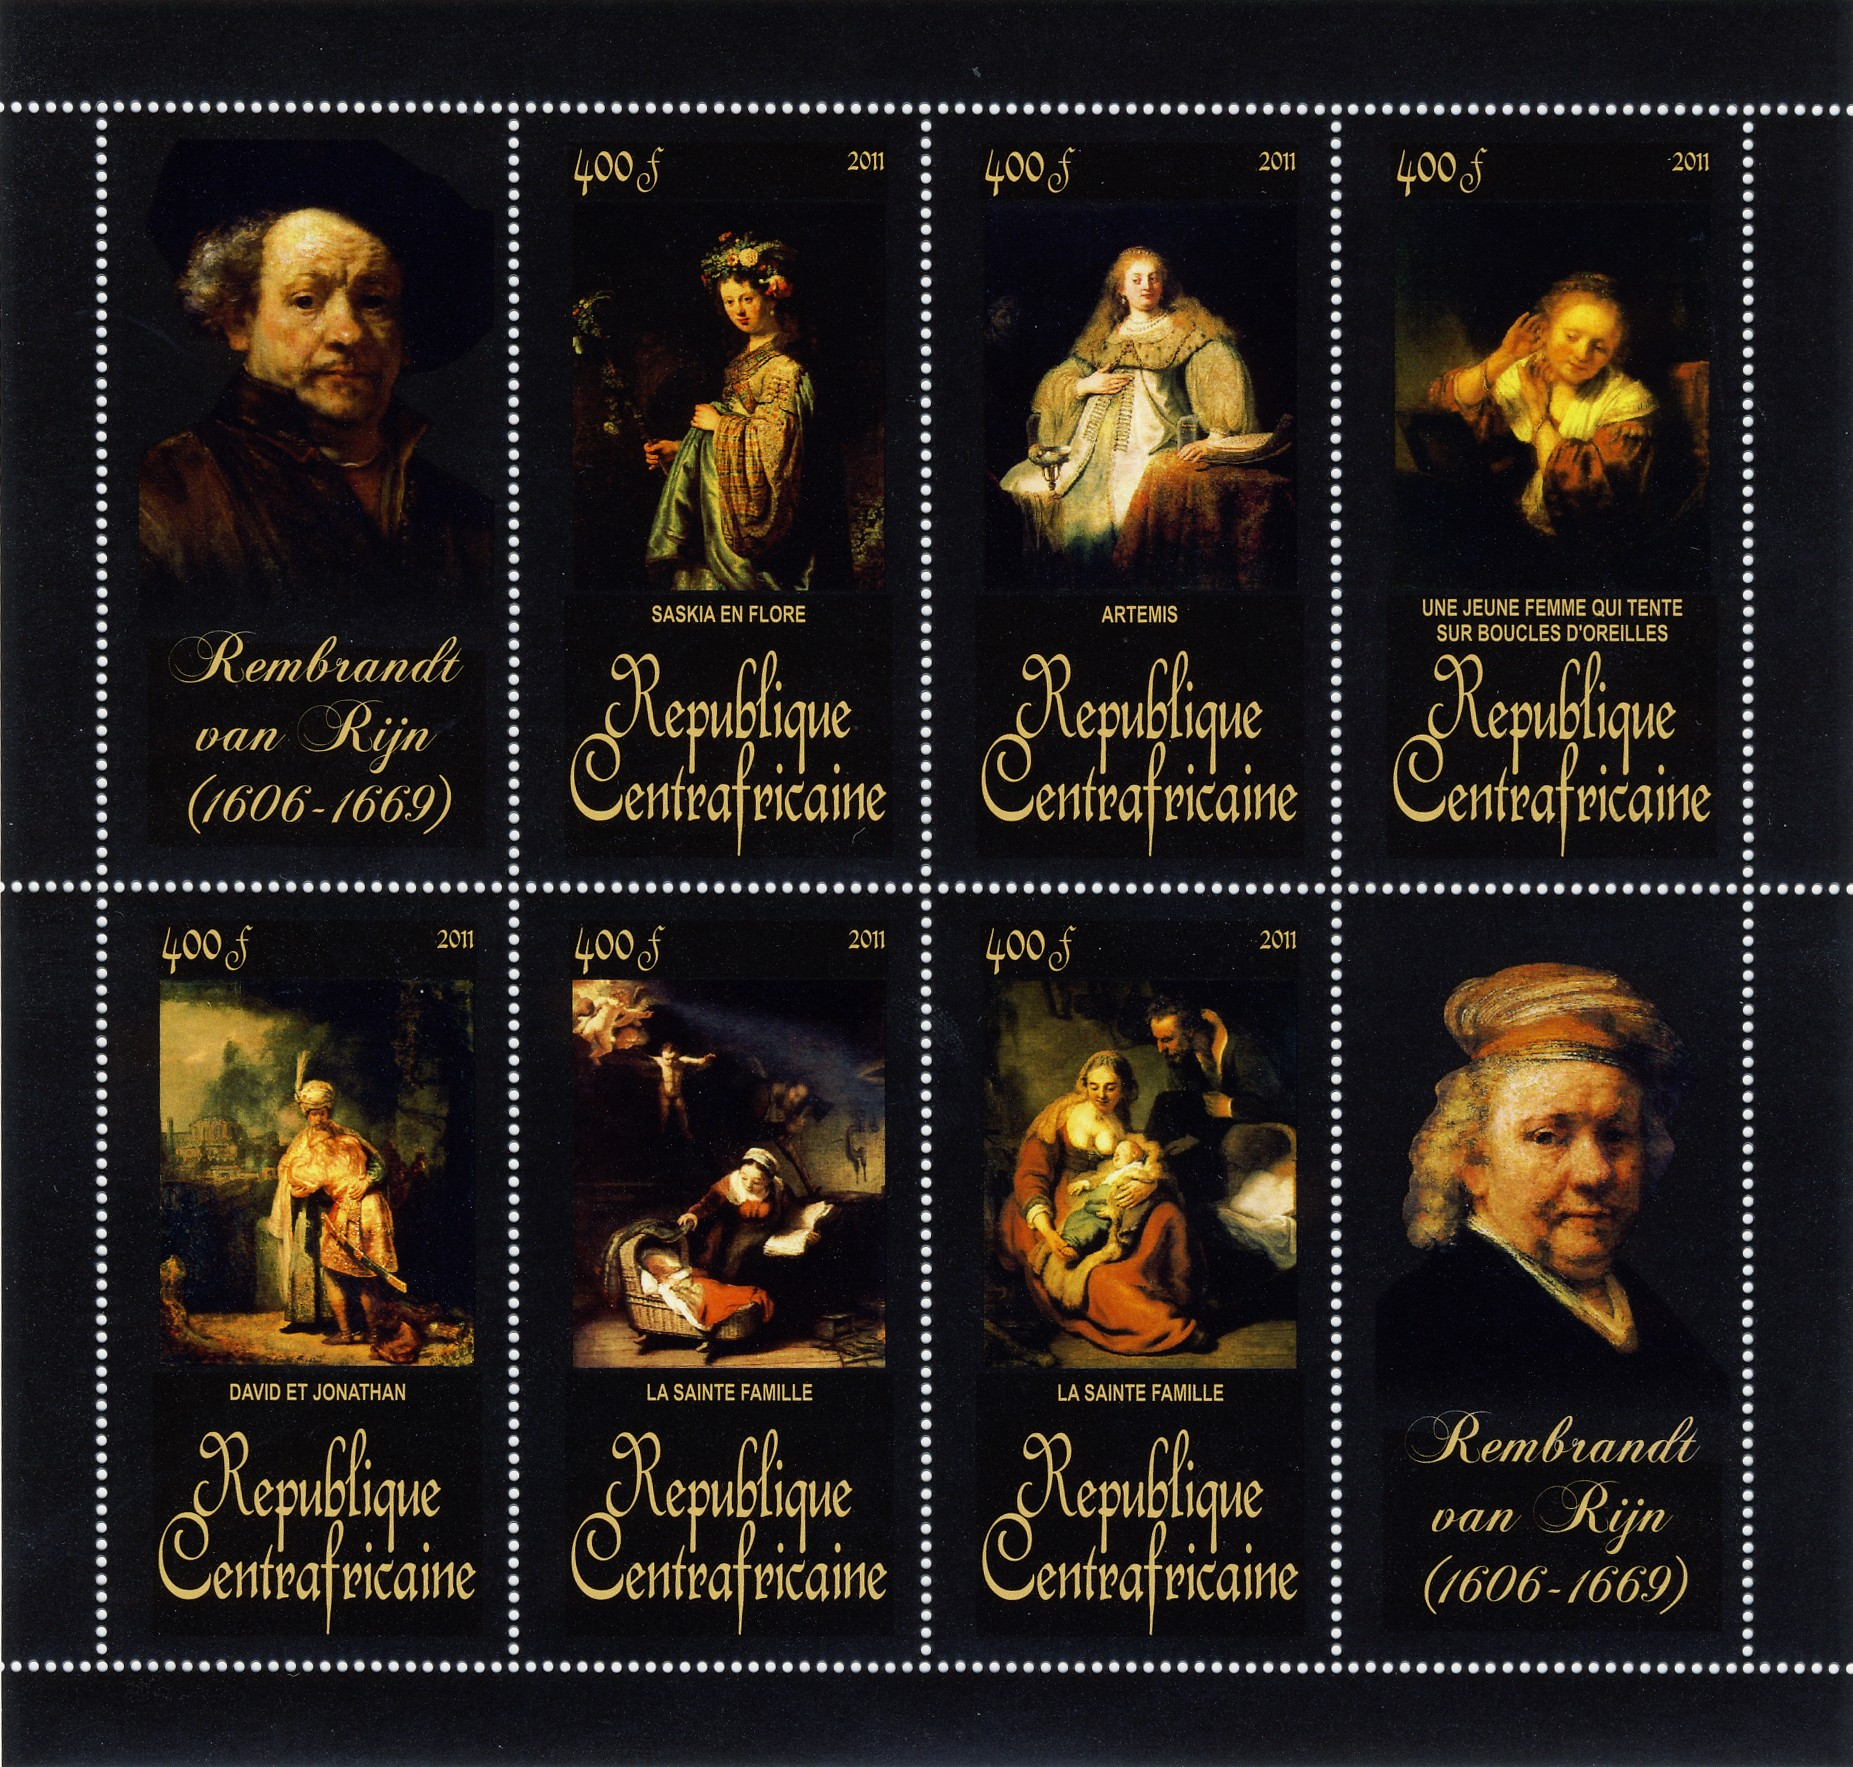 Paintings of Rembrandt van Rijn, (1606-1669). (Saskia en flore, La sainte famille). - Issue of Central African republic postage stamps